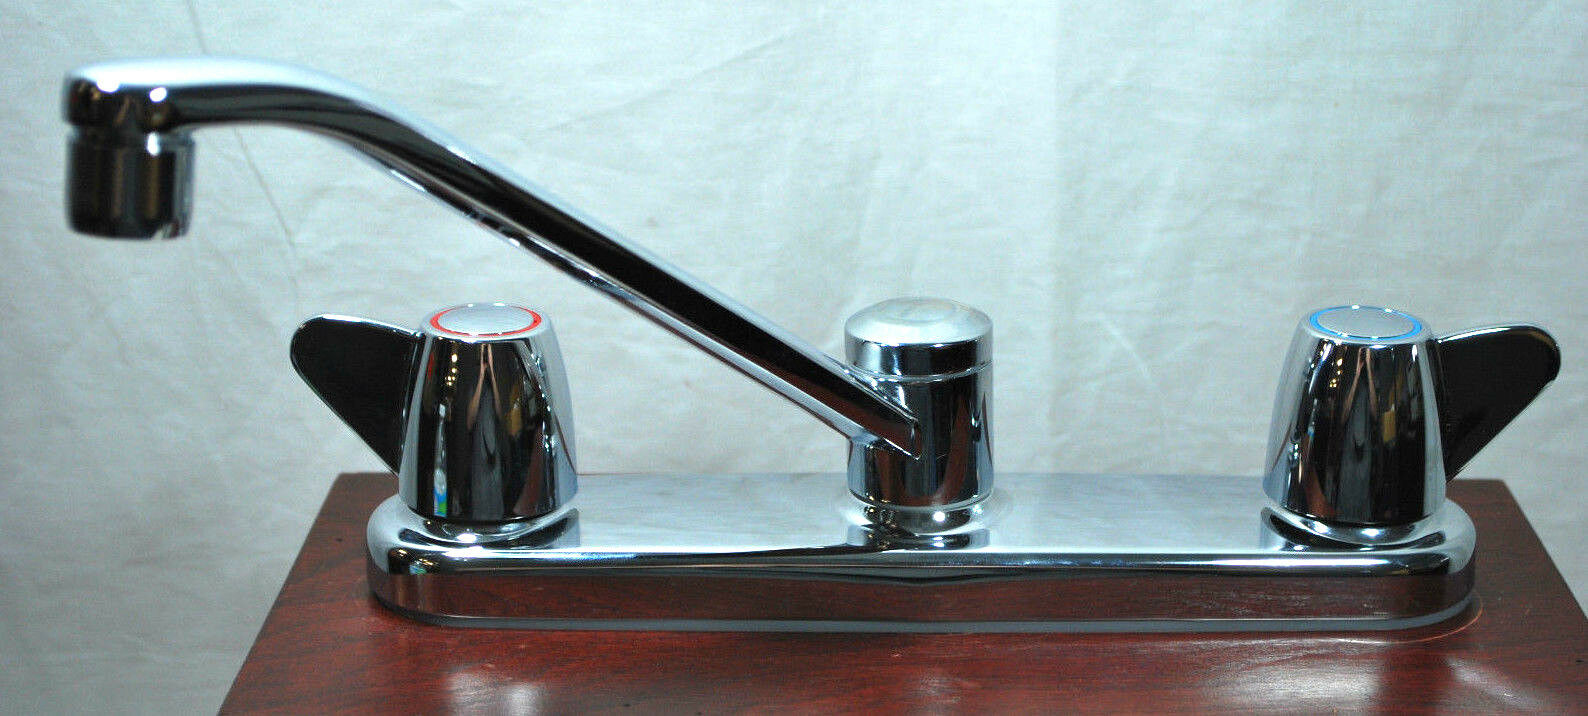 MOEN 47613 Flagstone 2-Handle Wing Kitchen Faucet w/ Spray (Chrome ...